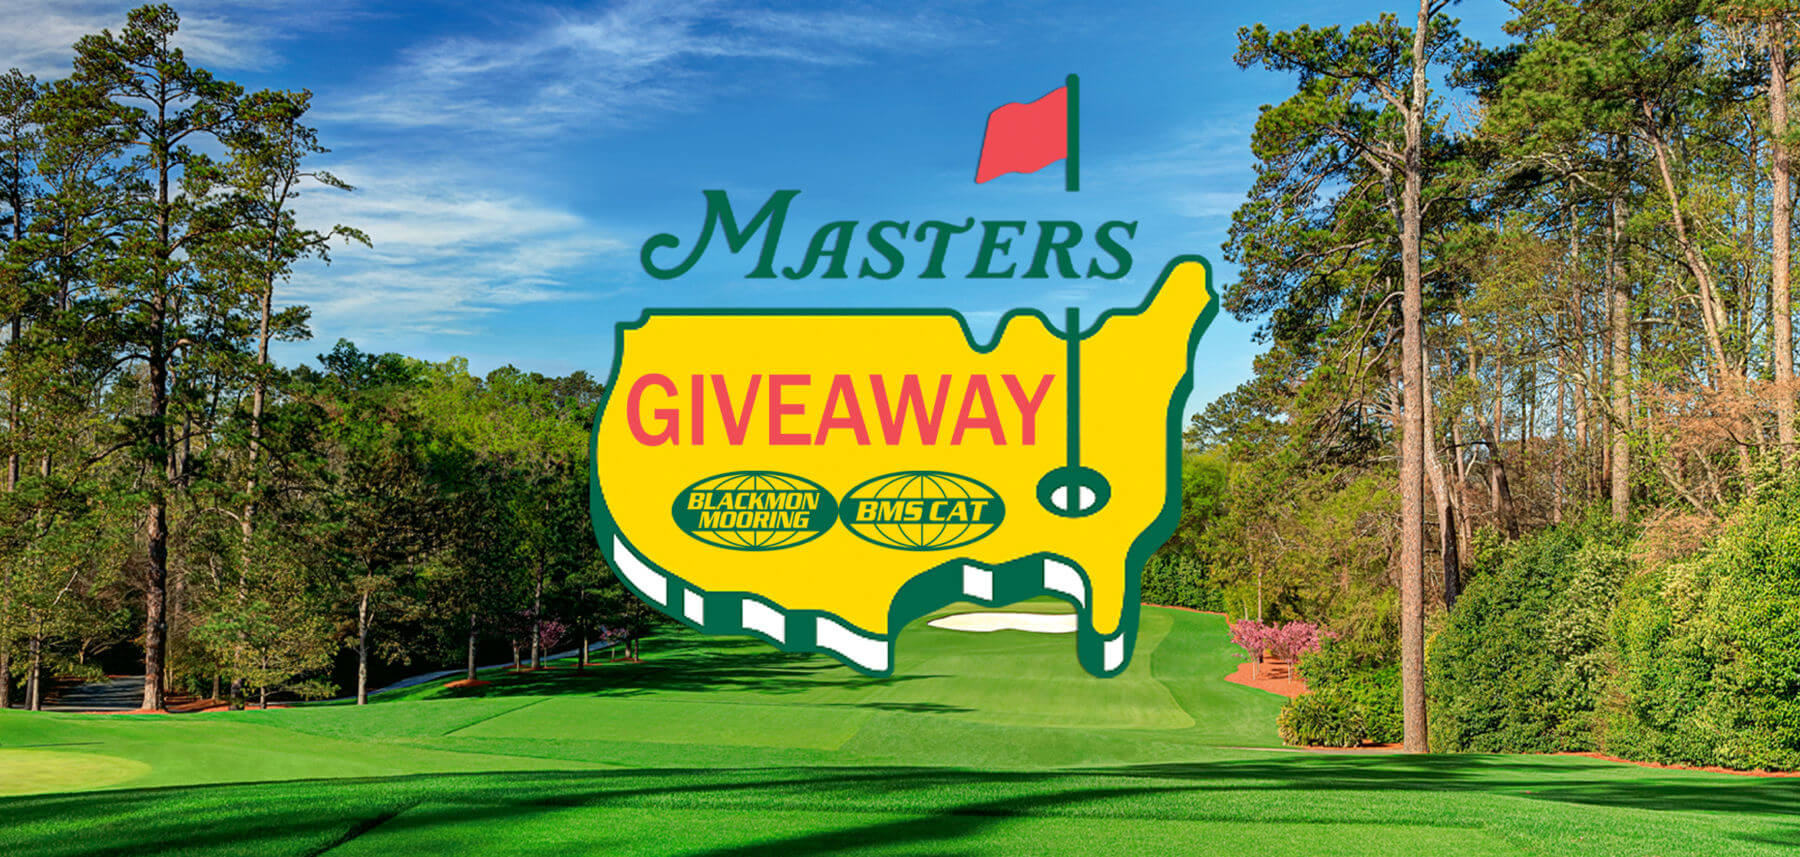 Masters Tournament Giveaway Landing Page Header